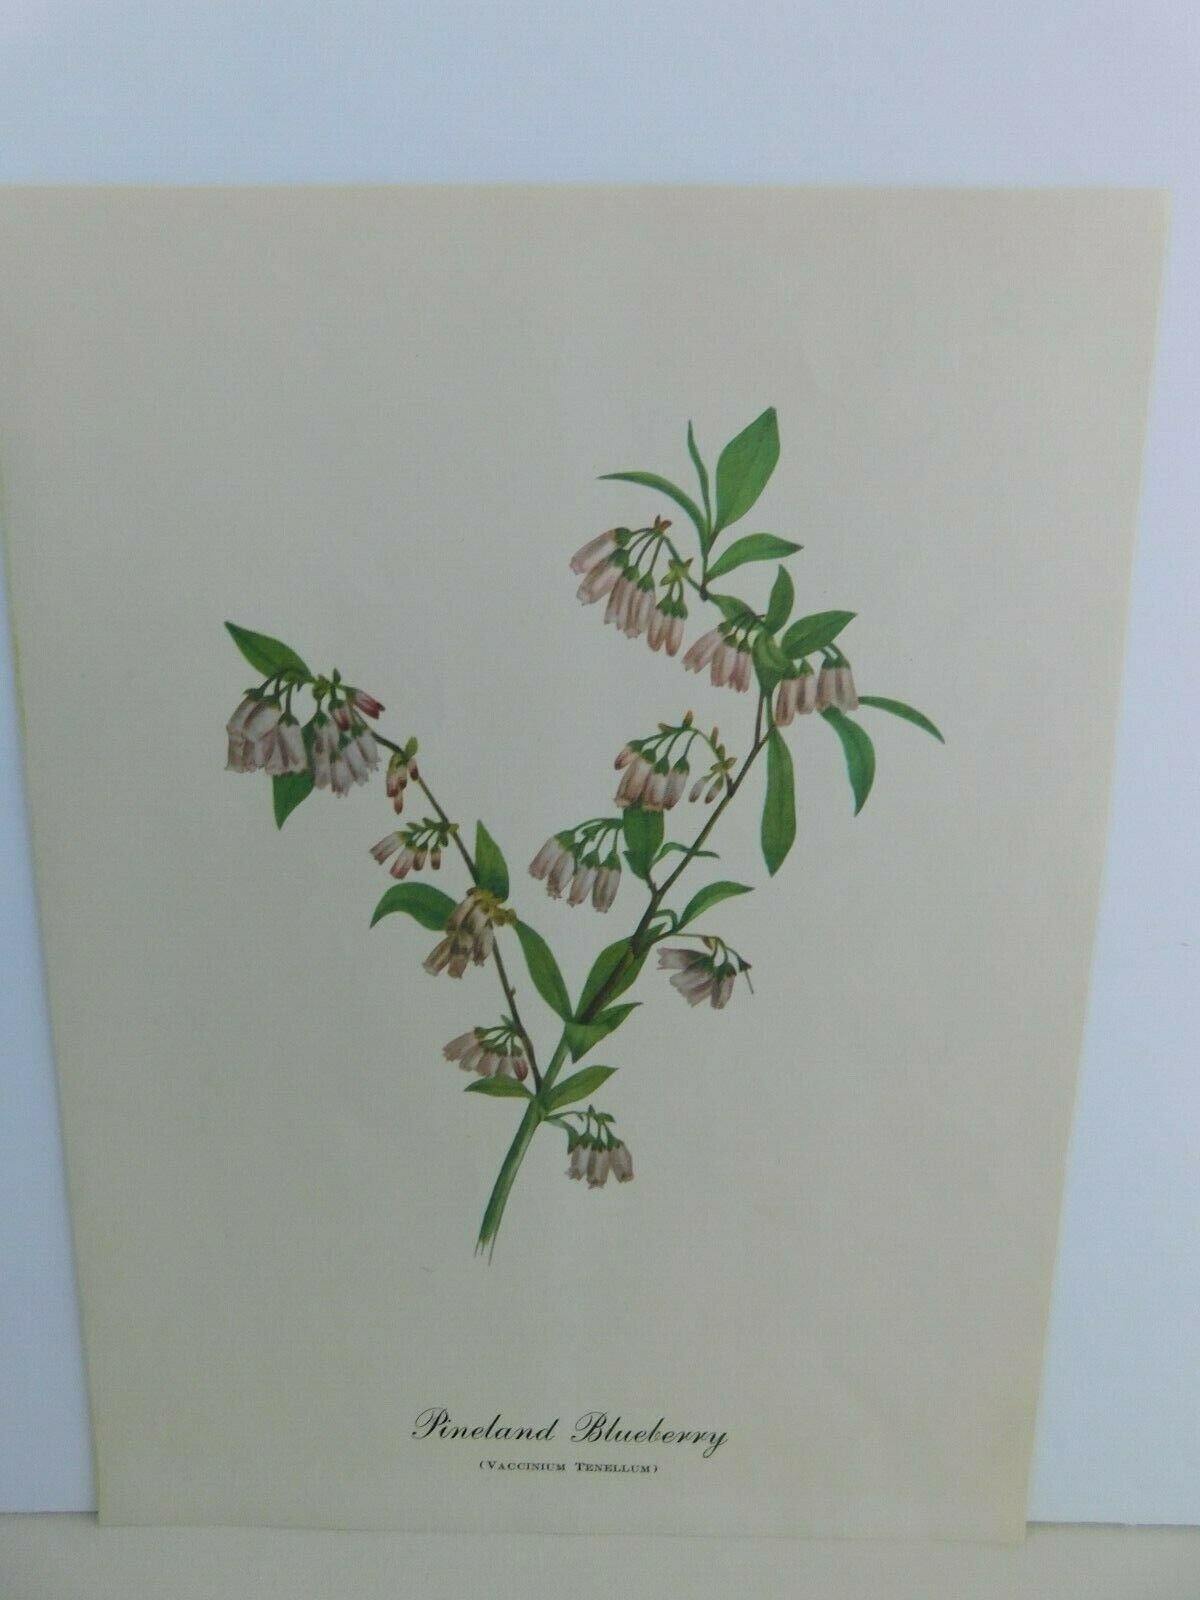 Primary image for VTG Pineland Blueberry  (Vaccinium Tenellum)  9x12 Frameable Print Nature Flower